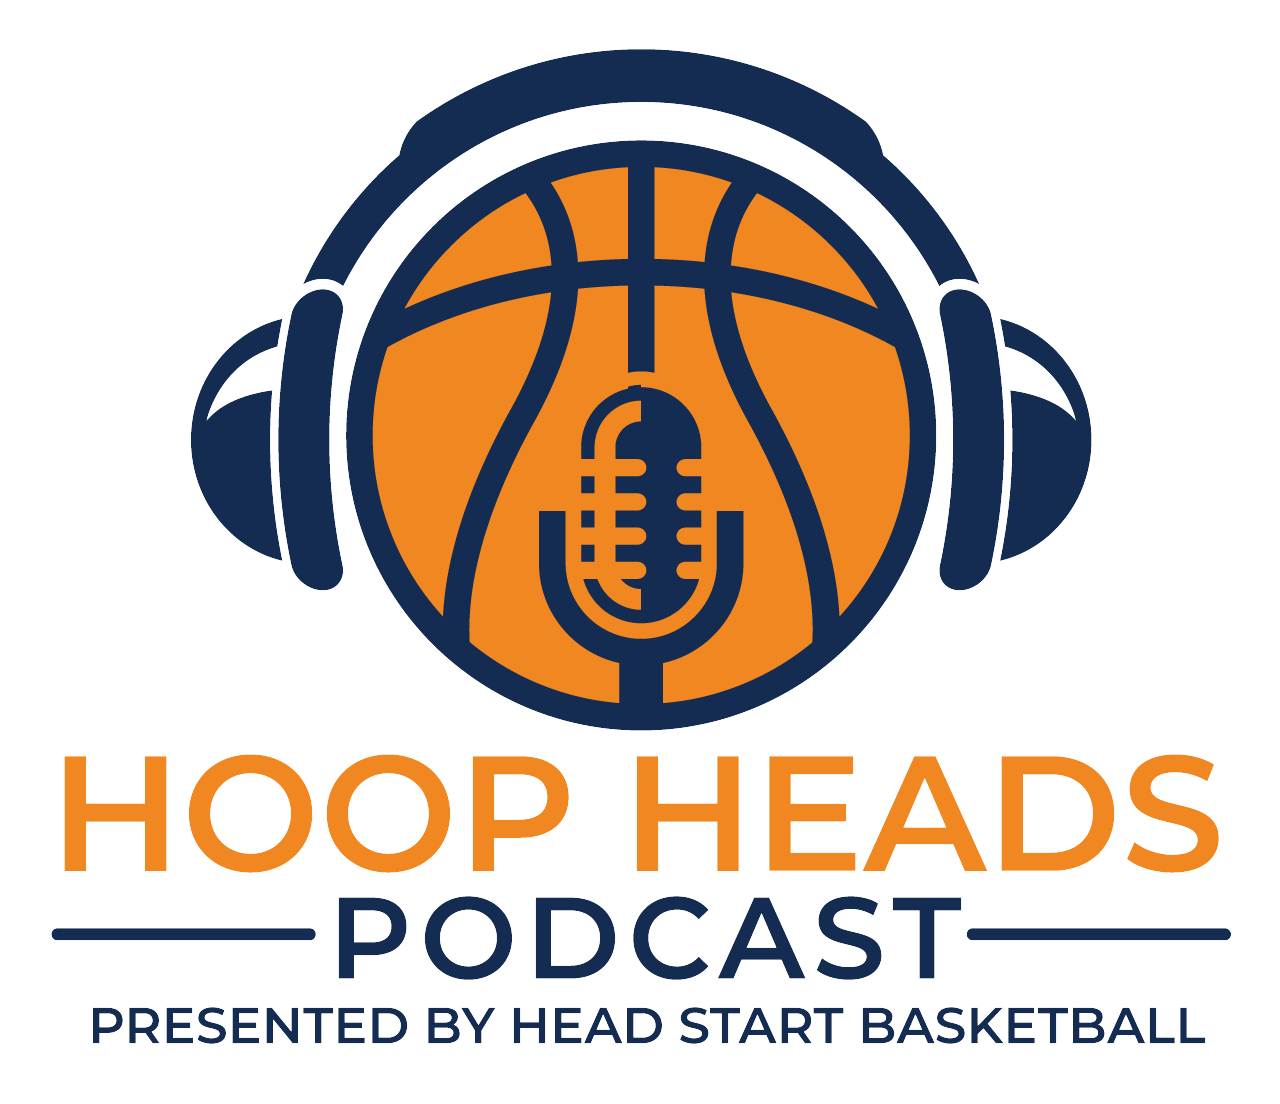 Hoop Heads Podcast